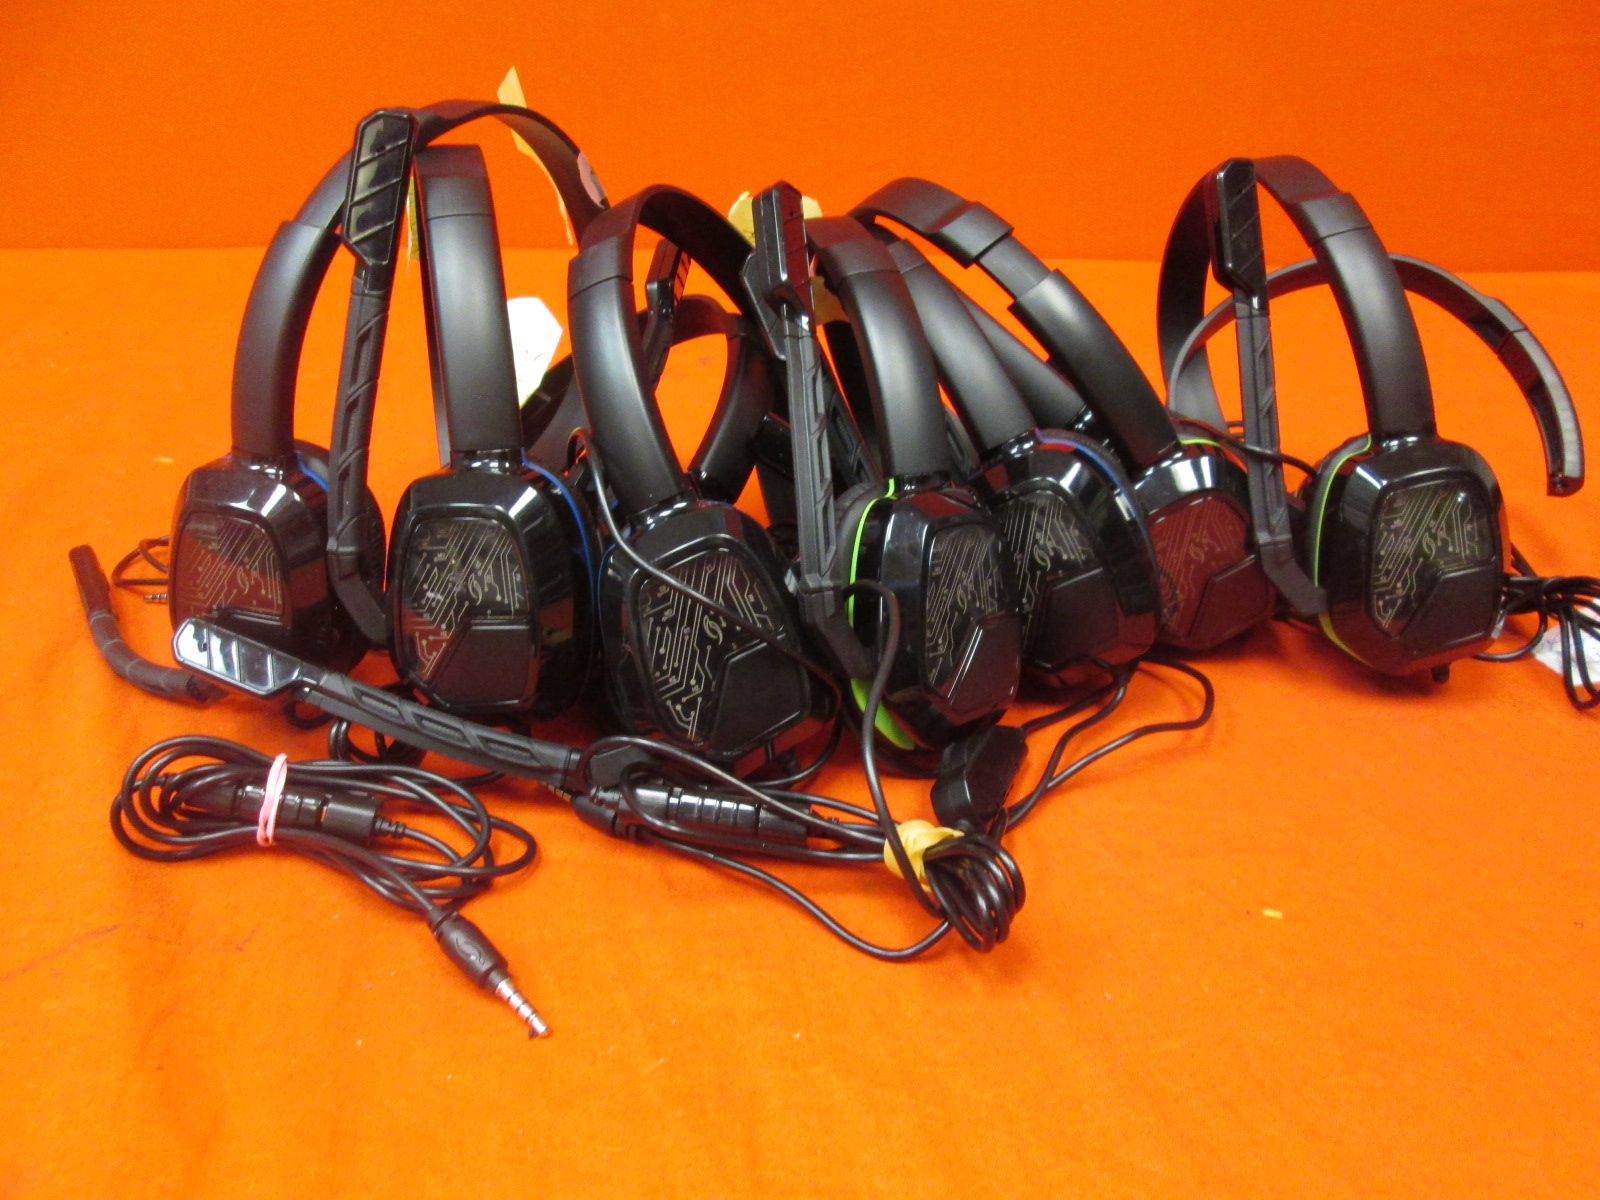 Lot Of 10 Afterglow Gaming Headsets For PlayStation 4 Broken